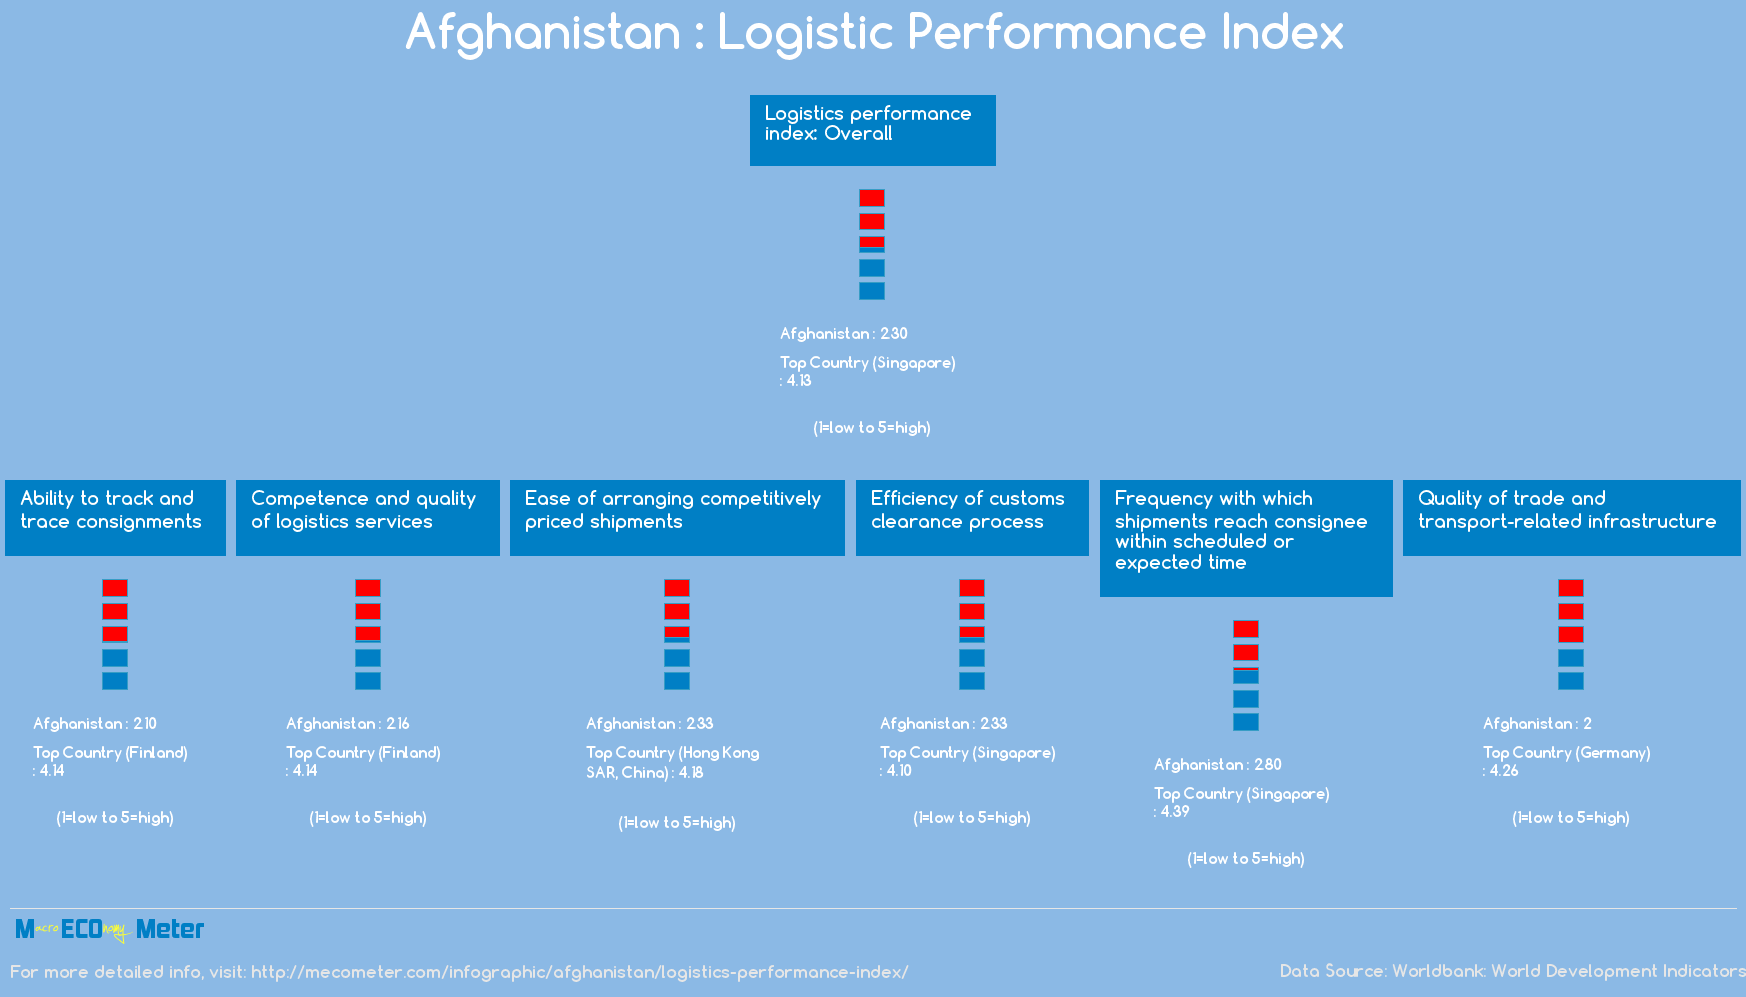 Afghanistan : Logistic Performance Index